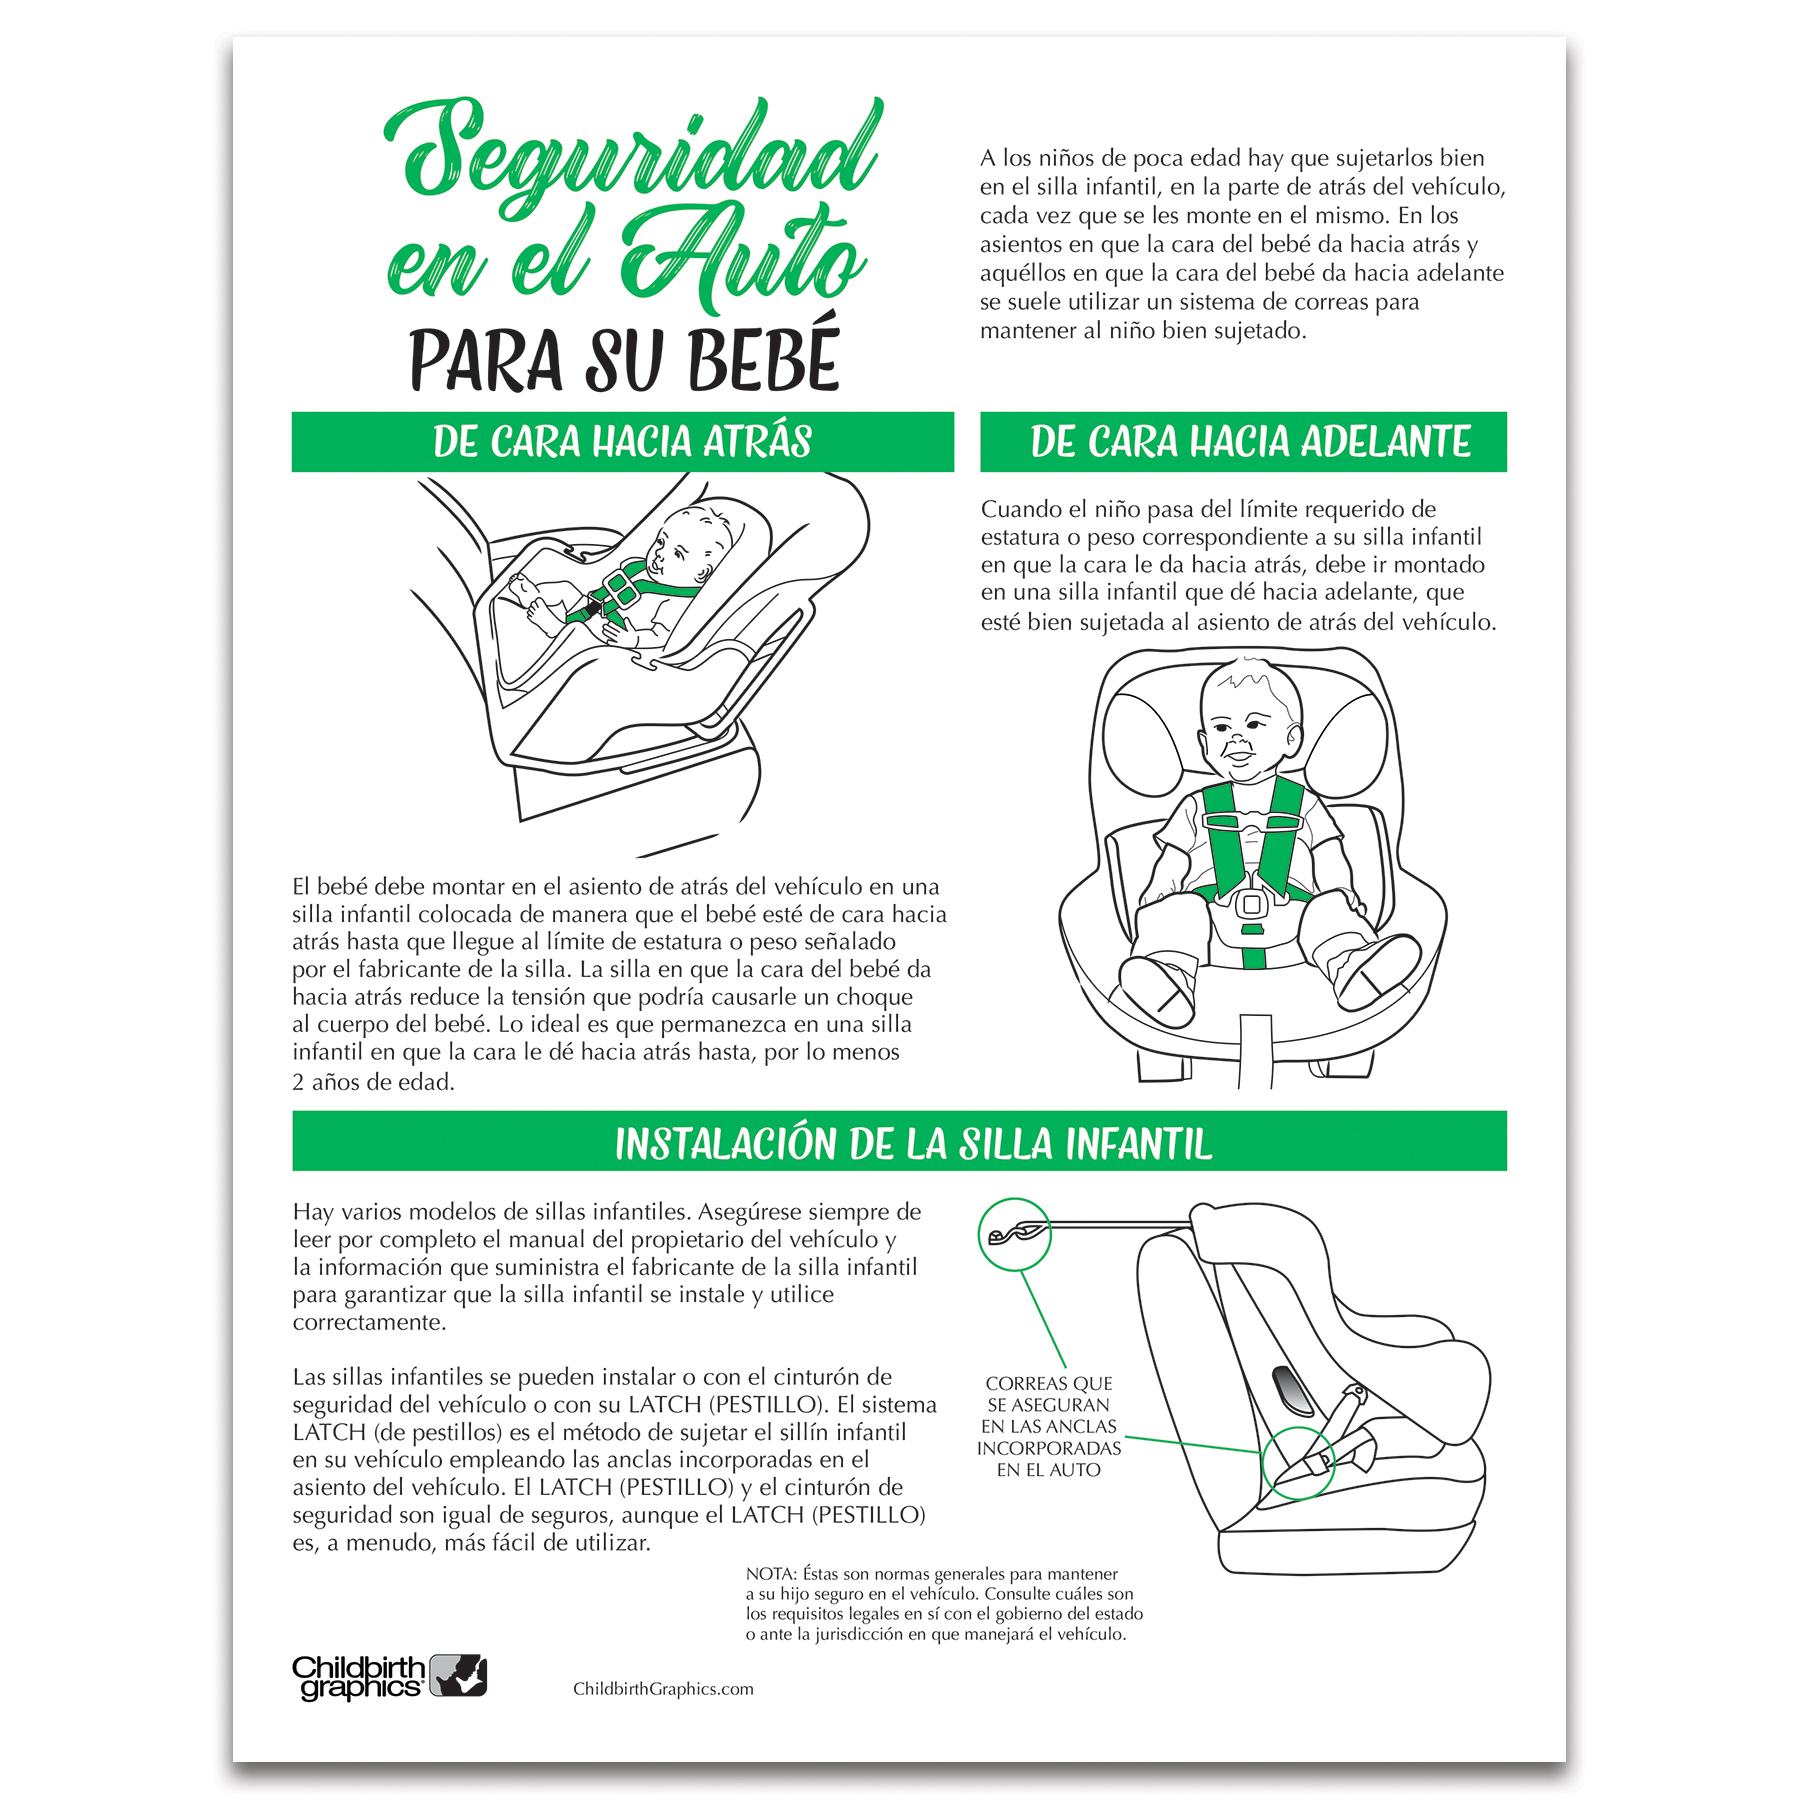 Car Safety for Your Baby 2-color illustrated tear pad Spanish side, car seat guidelines, Childbirth Graphics, 52528